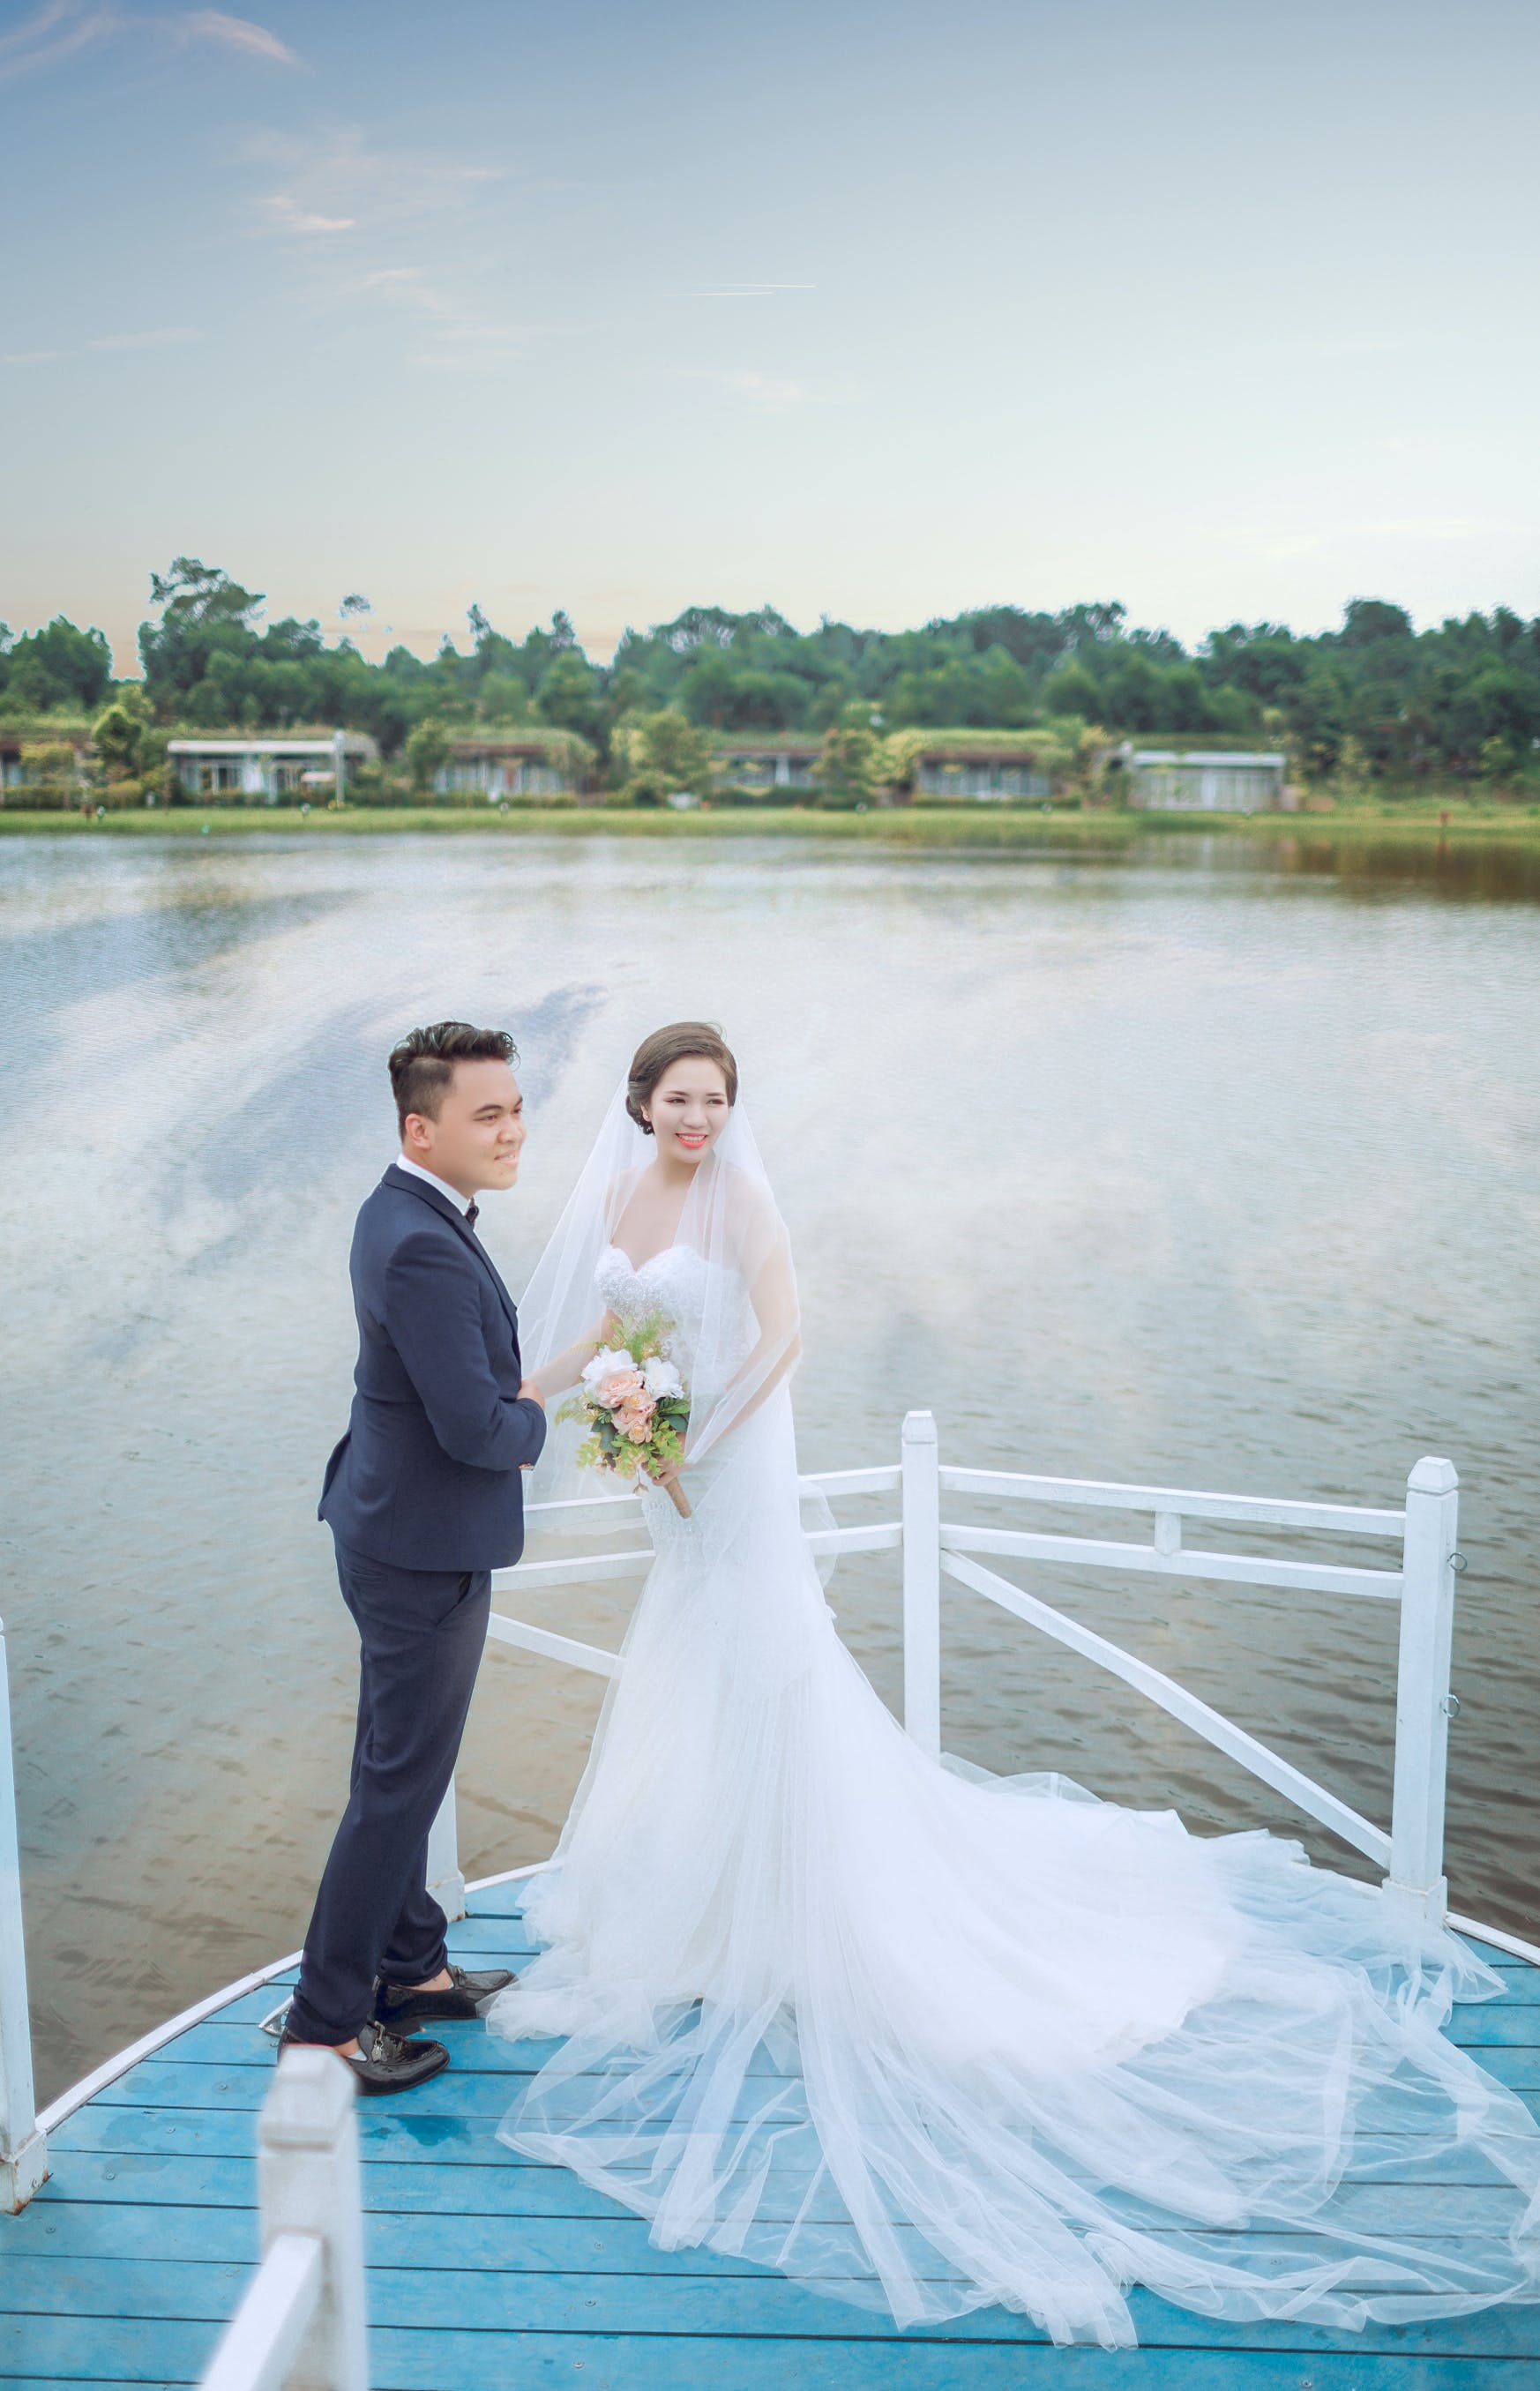 Just Married Man and Woman on Blue Platform Near Body of Water